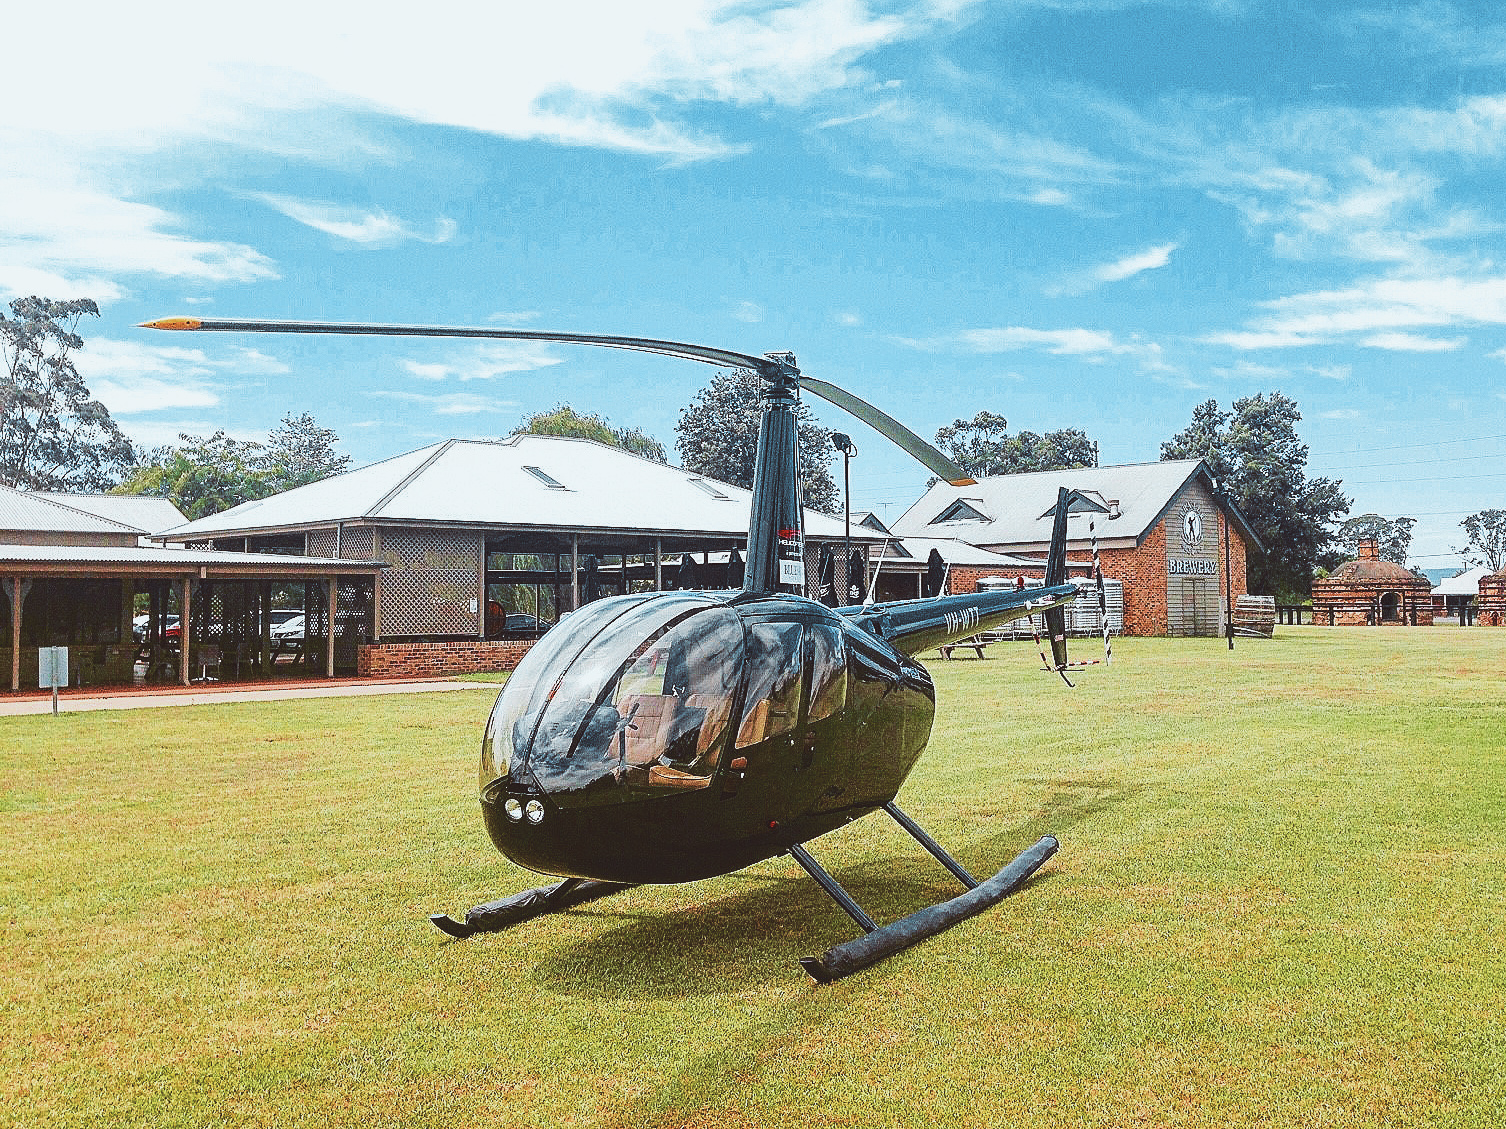 VH-WTT R44 at potters brewery